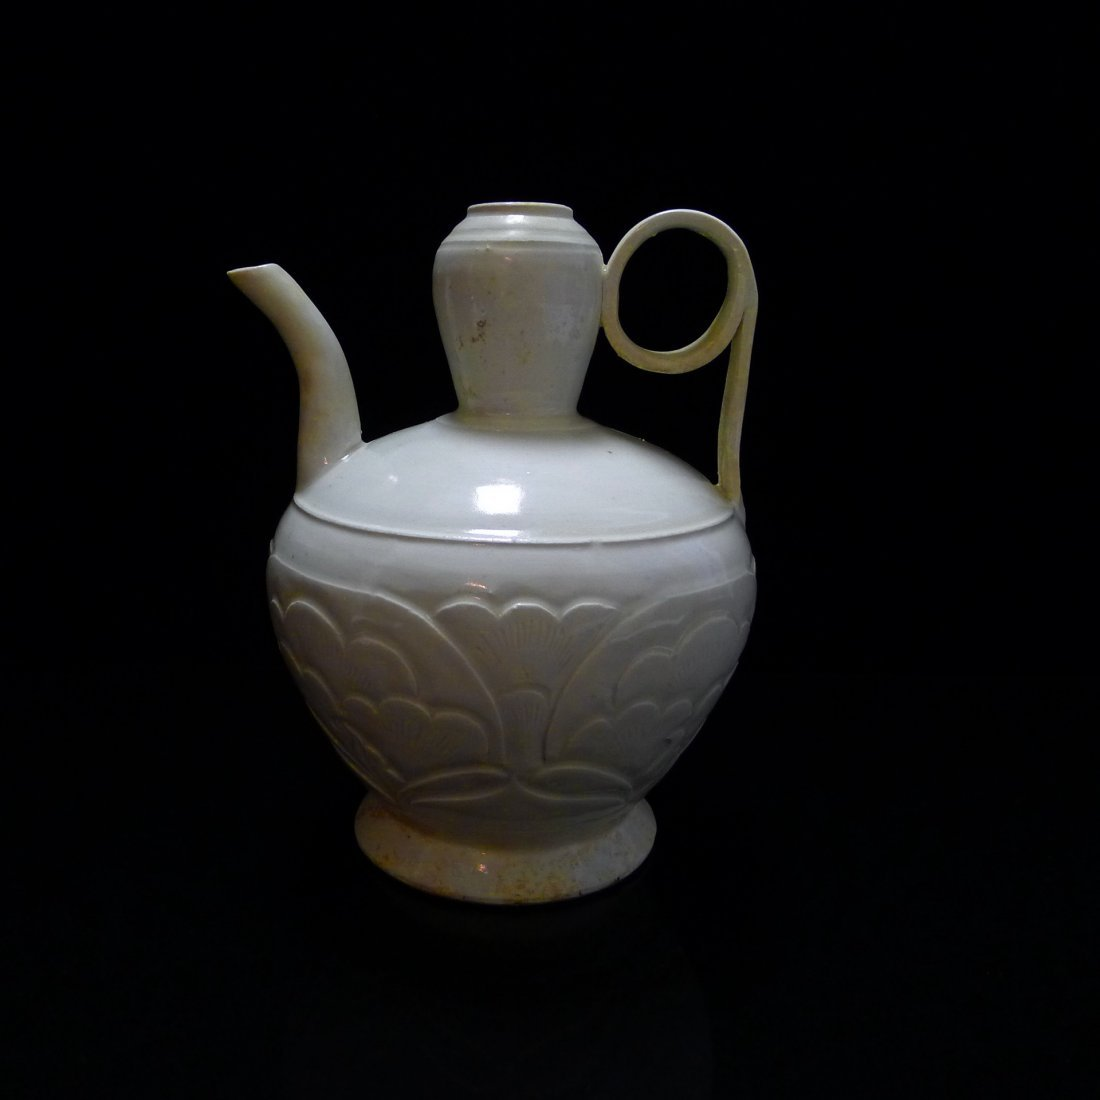 FIVE DYNASTY DING YAO CARVING EWER